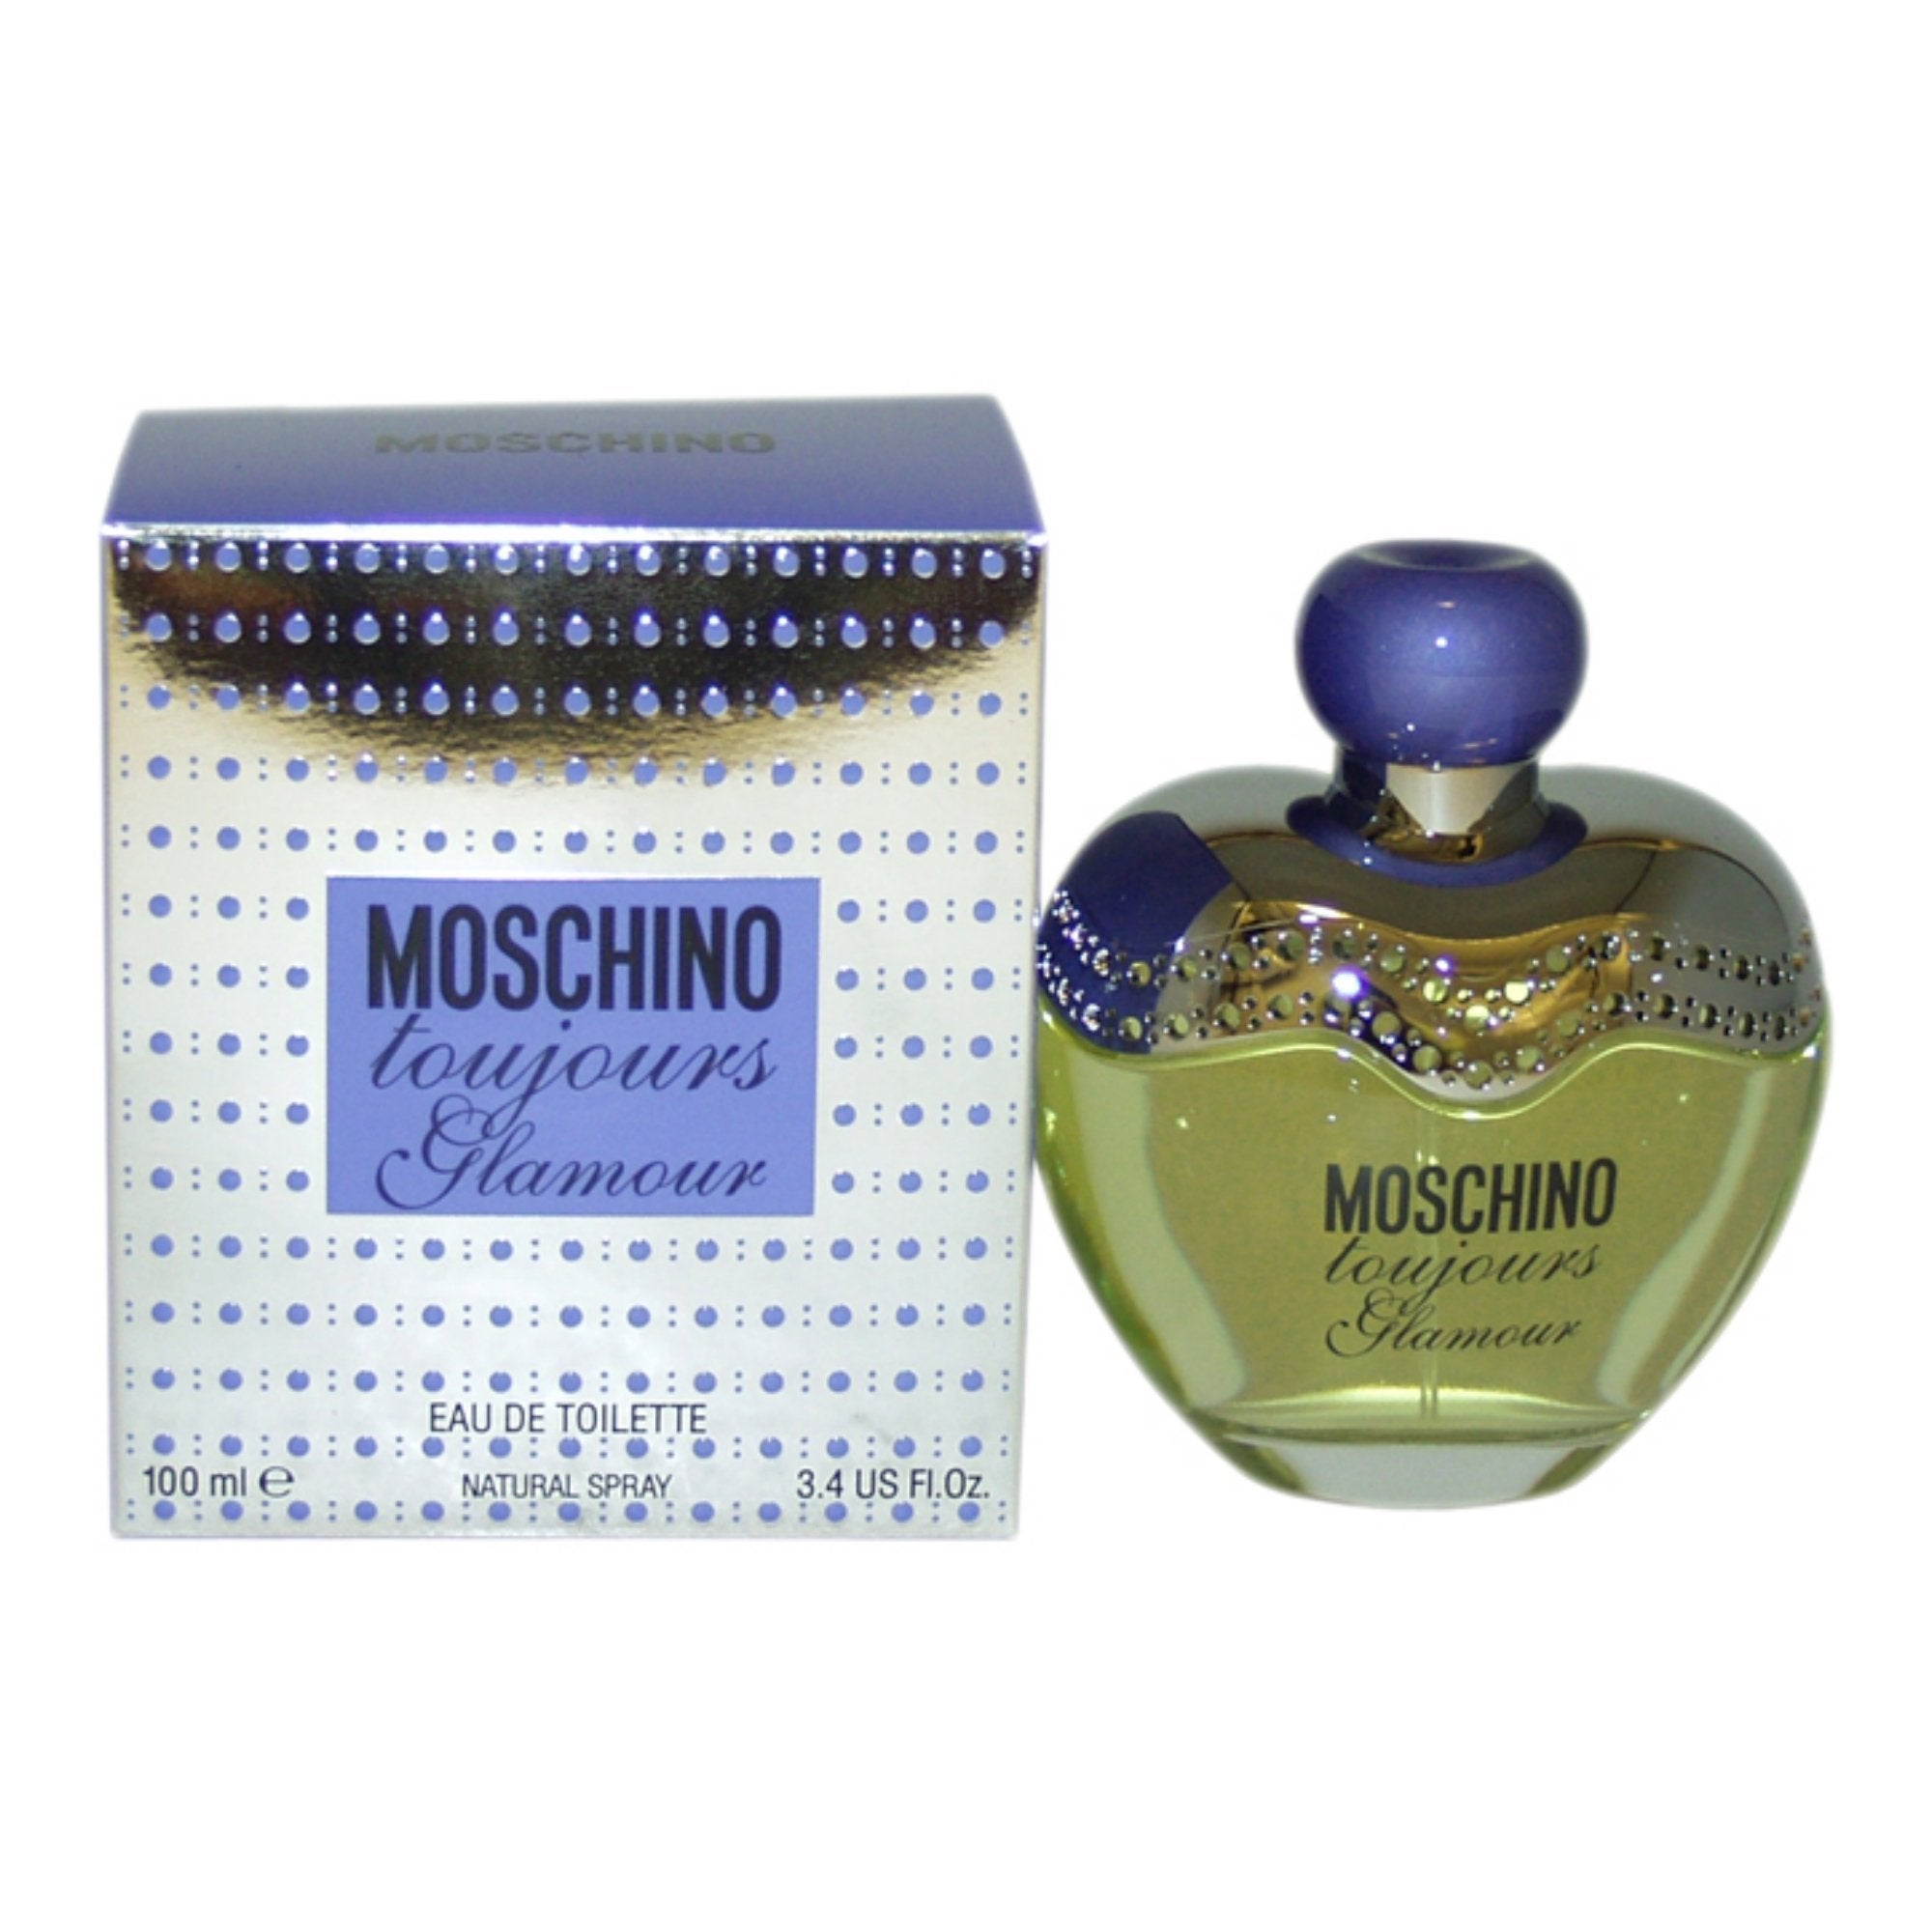 moschino glamour toujours edt